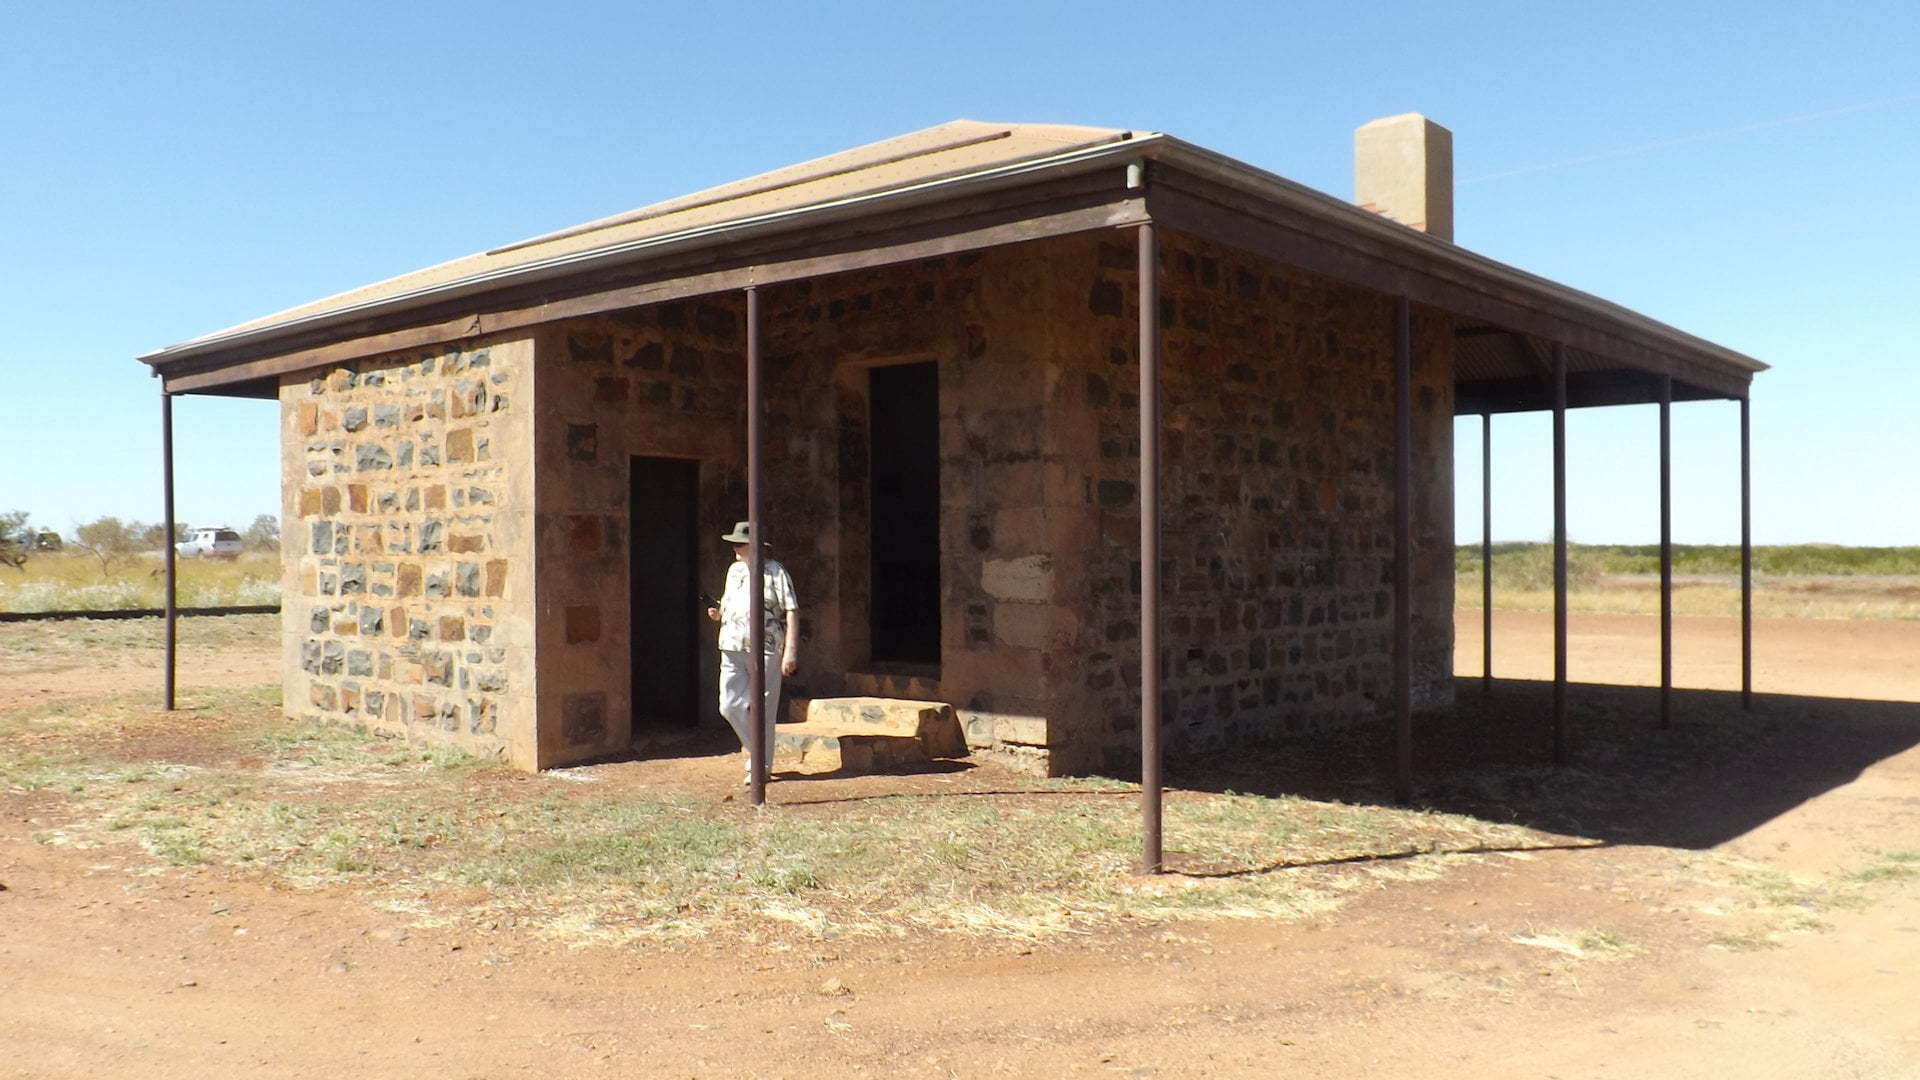 Historical School House in the abandoned town of Cossack in Western Australia